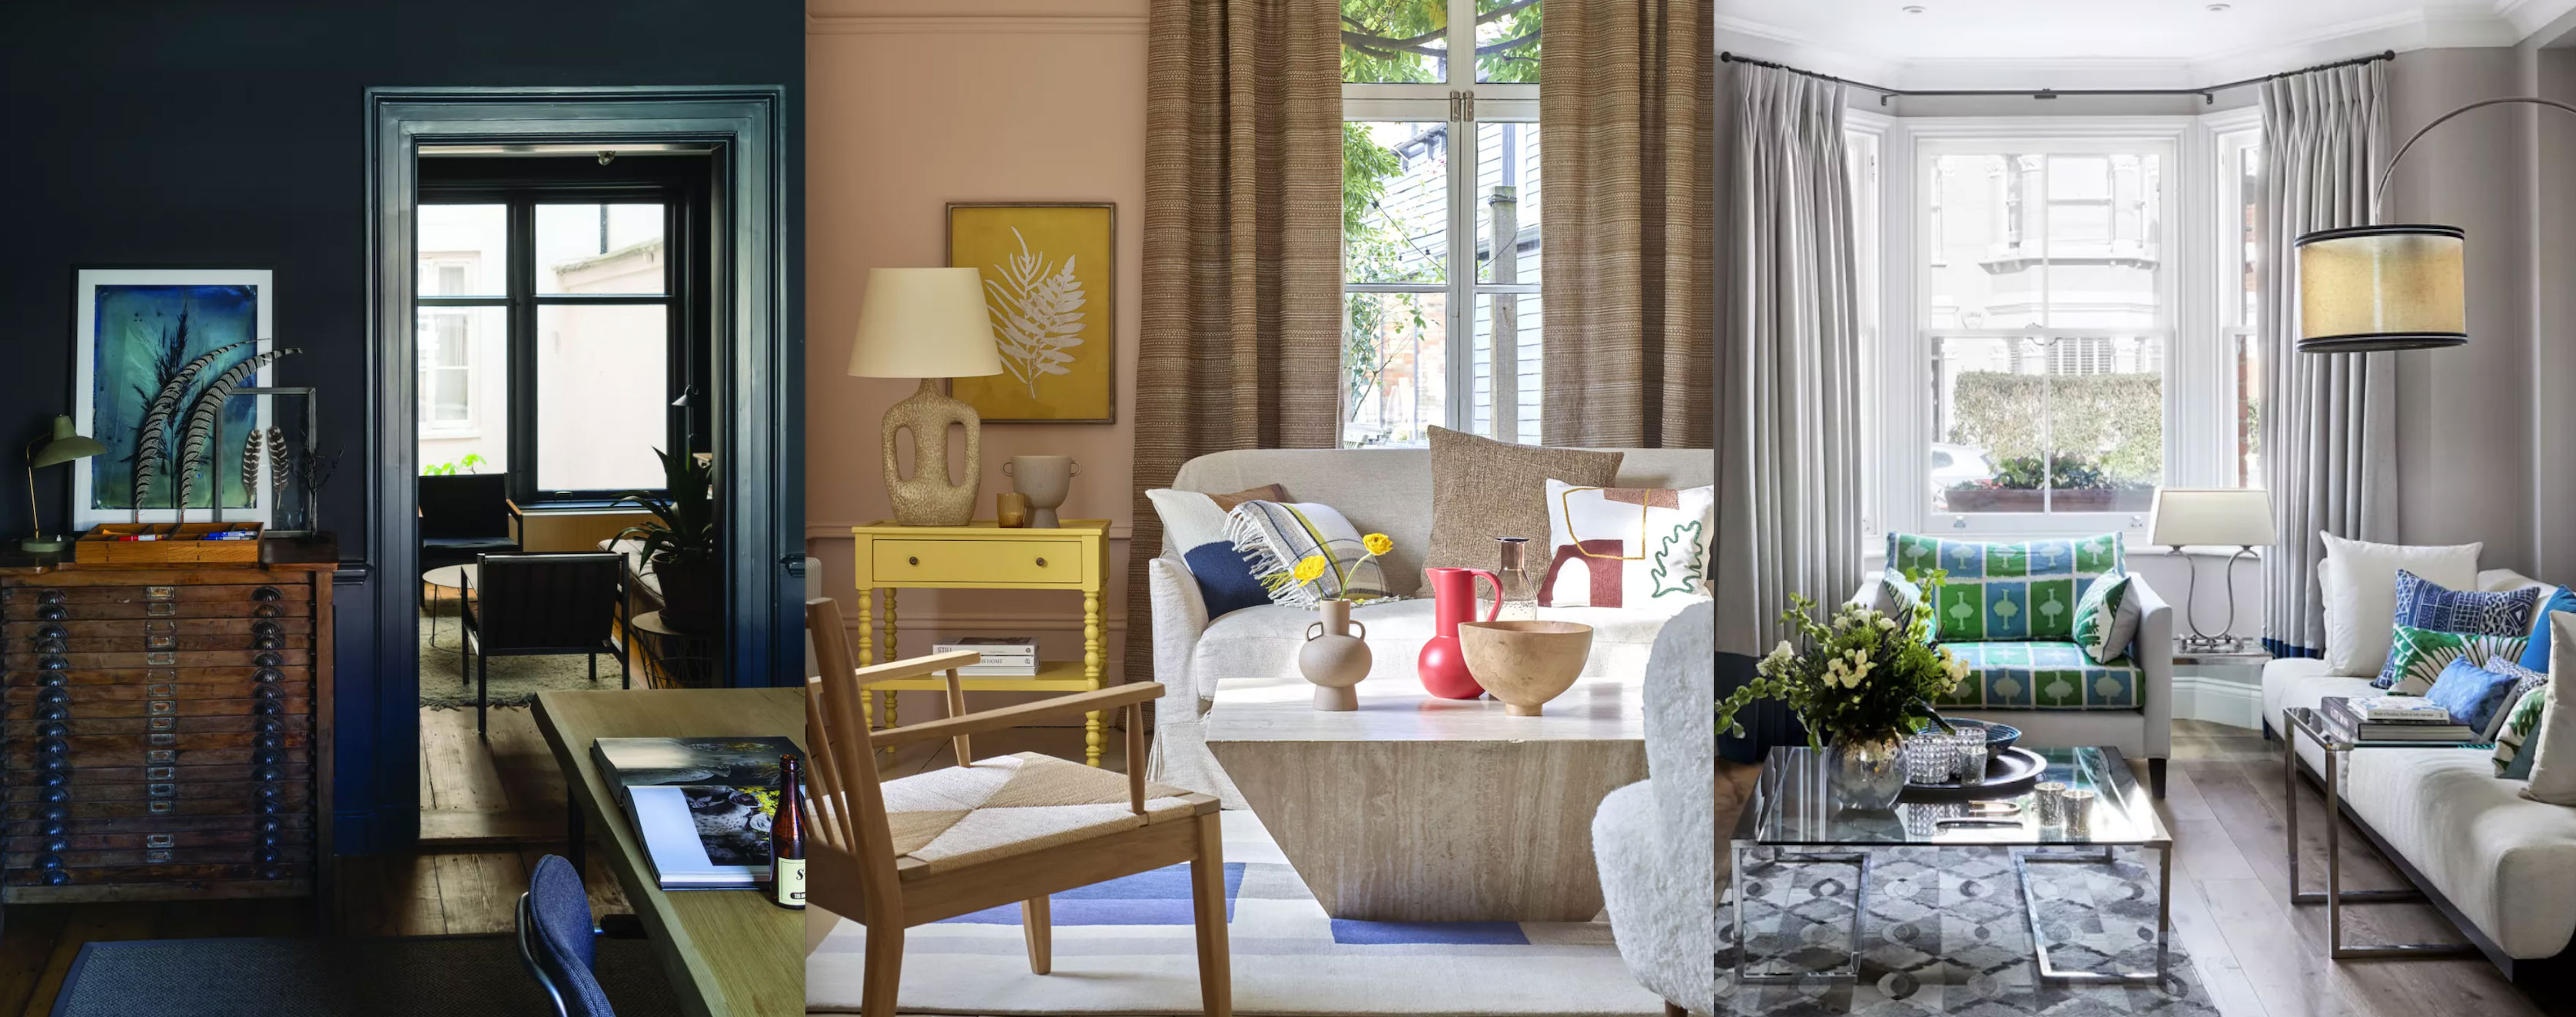 15 Living Room Color Schemes The Best, Color For Living Rooms